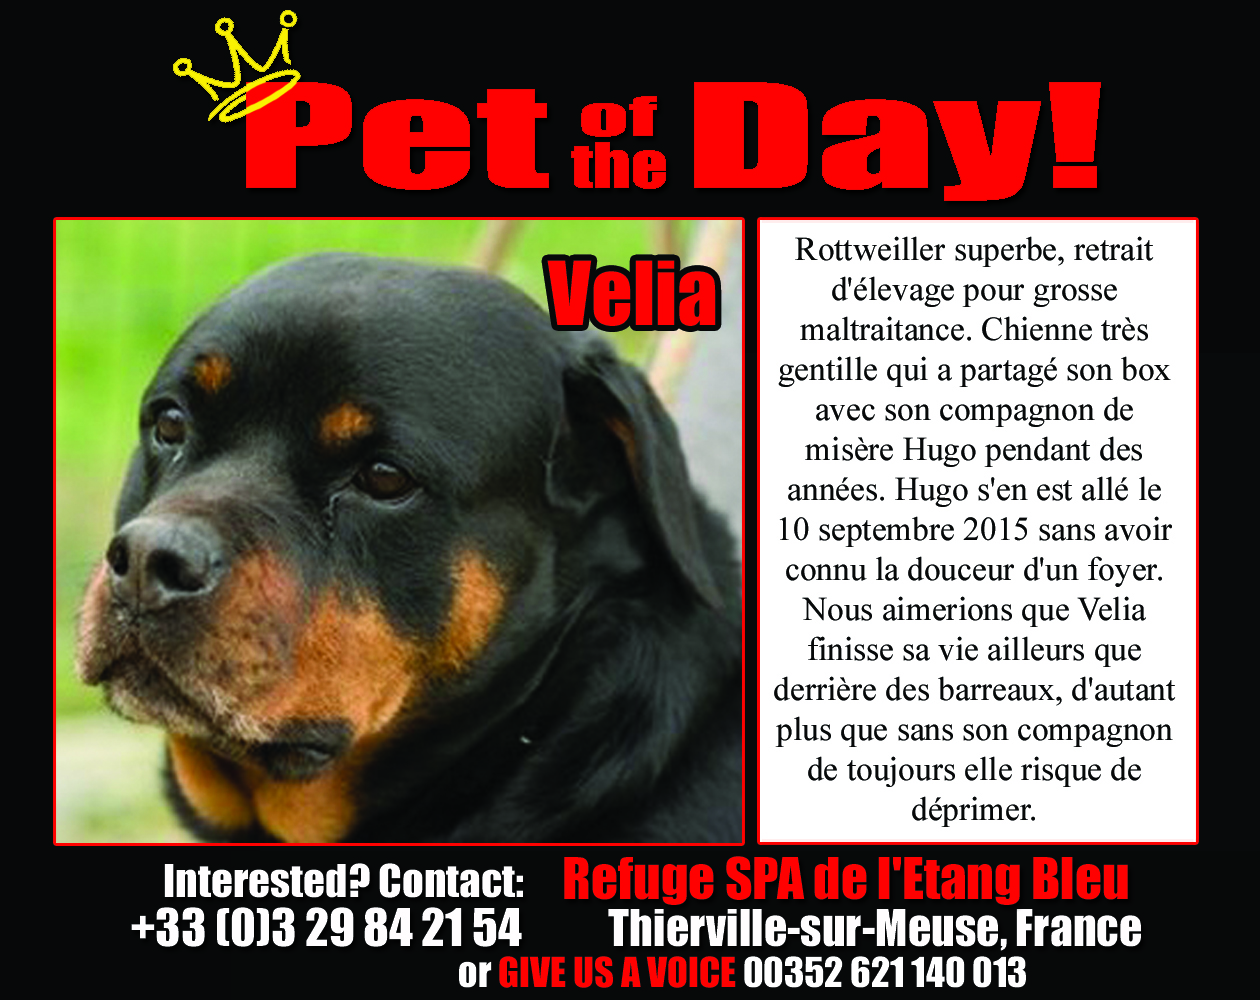 09-17-15 Pet of the Day